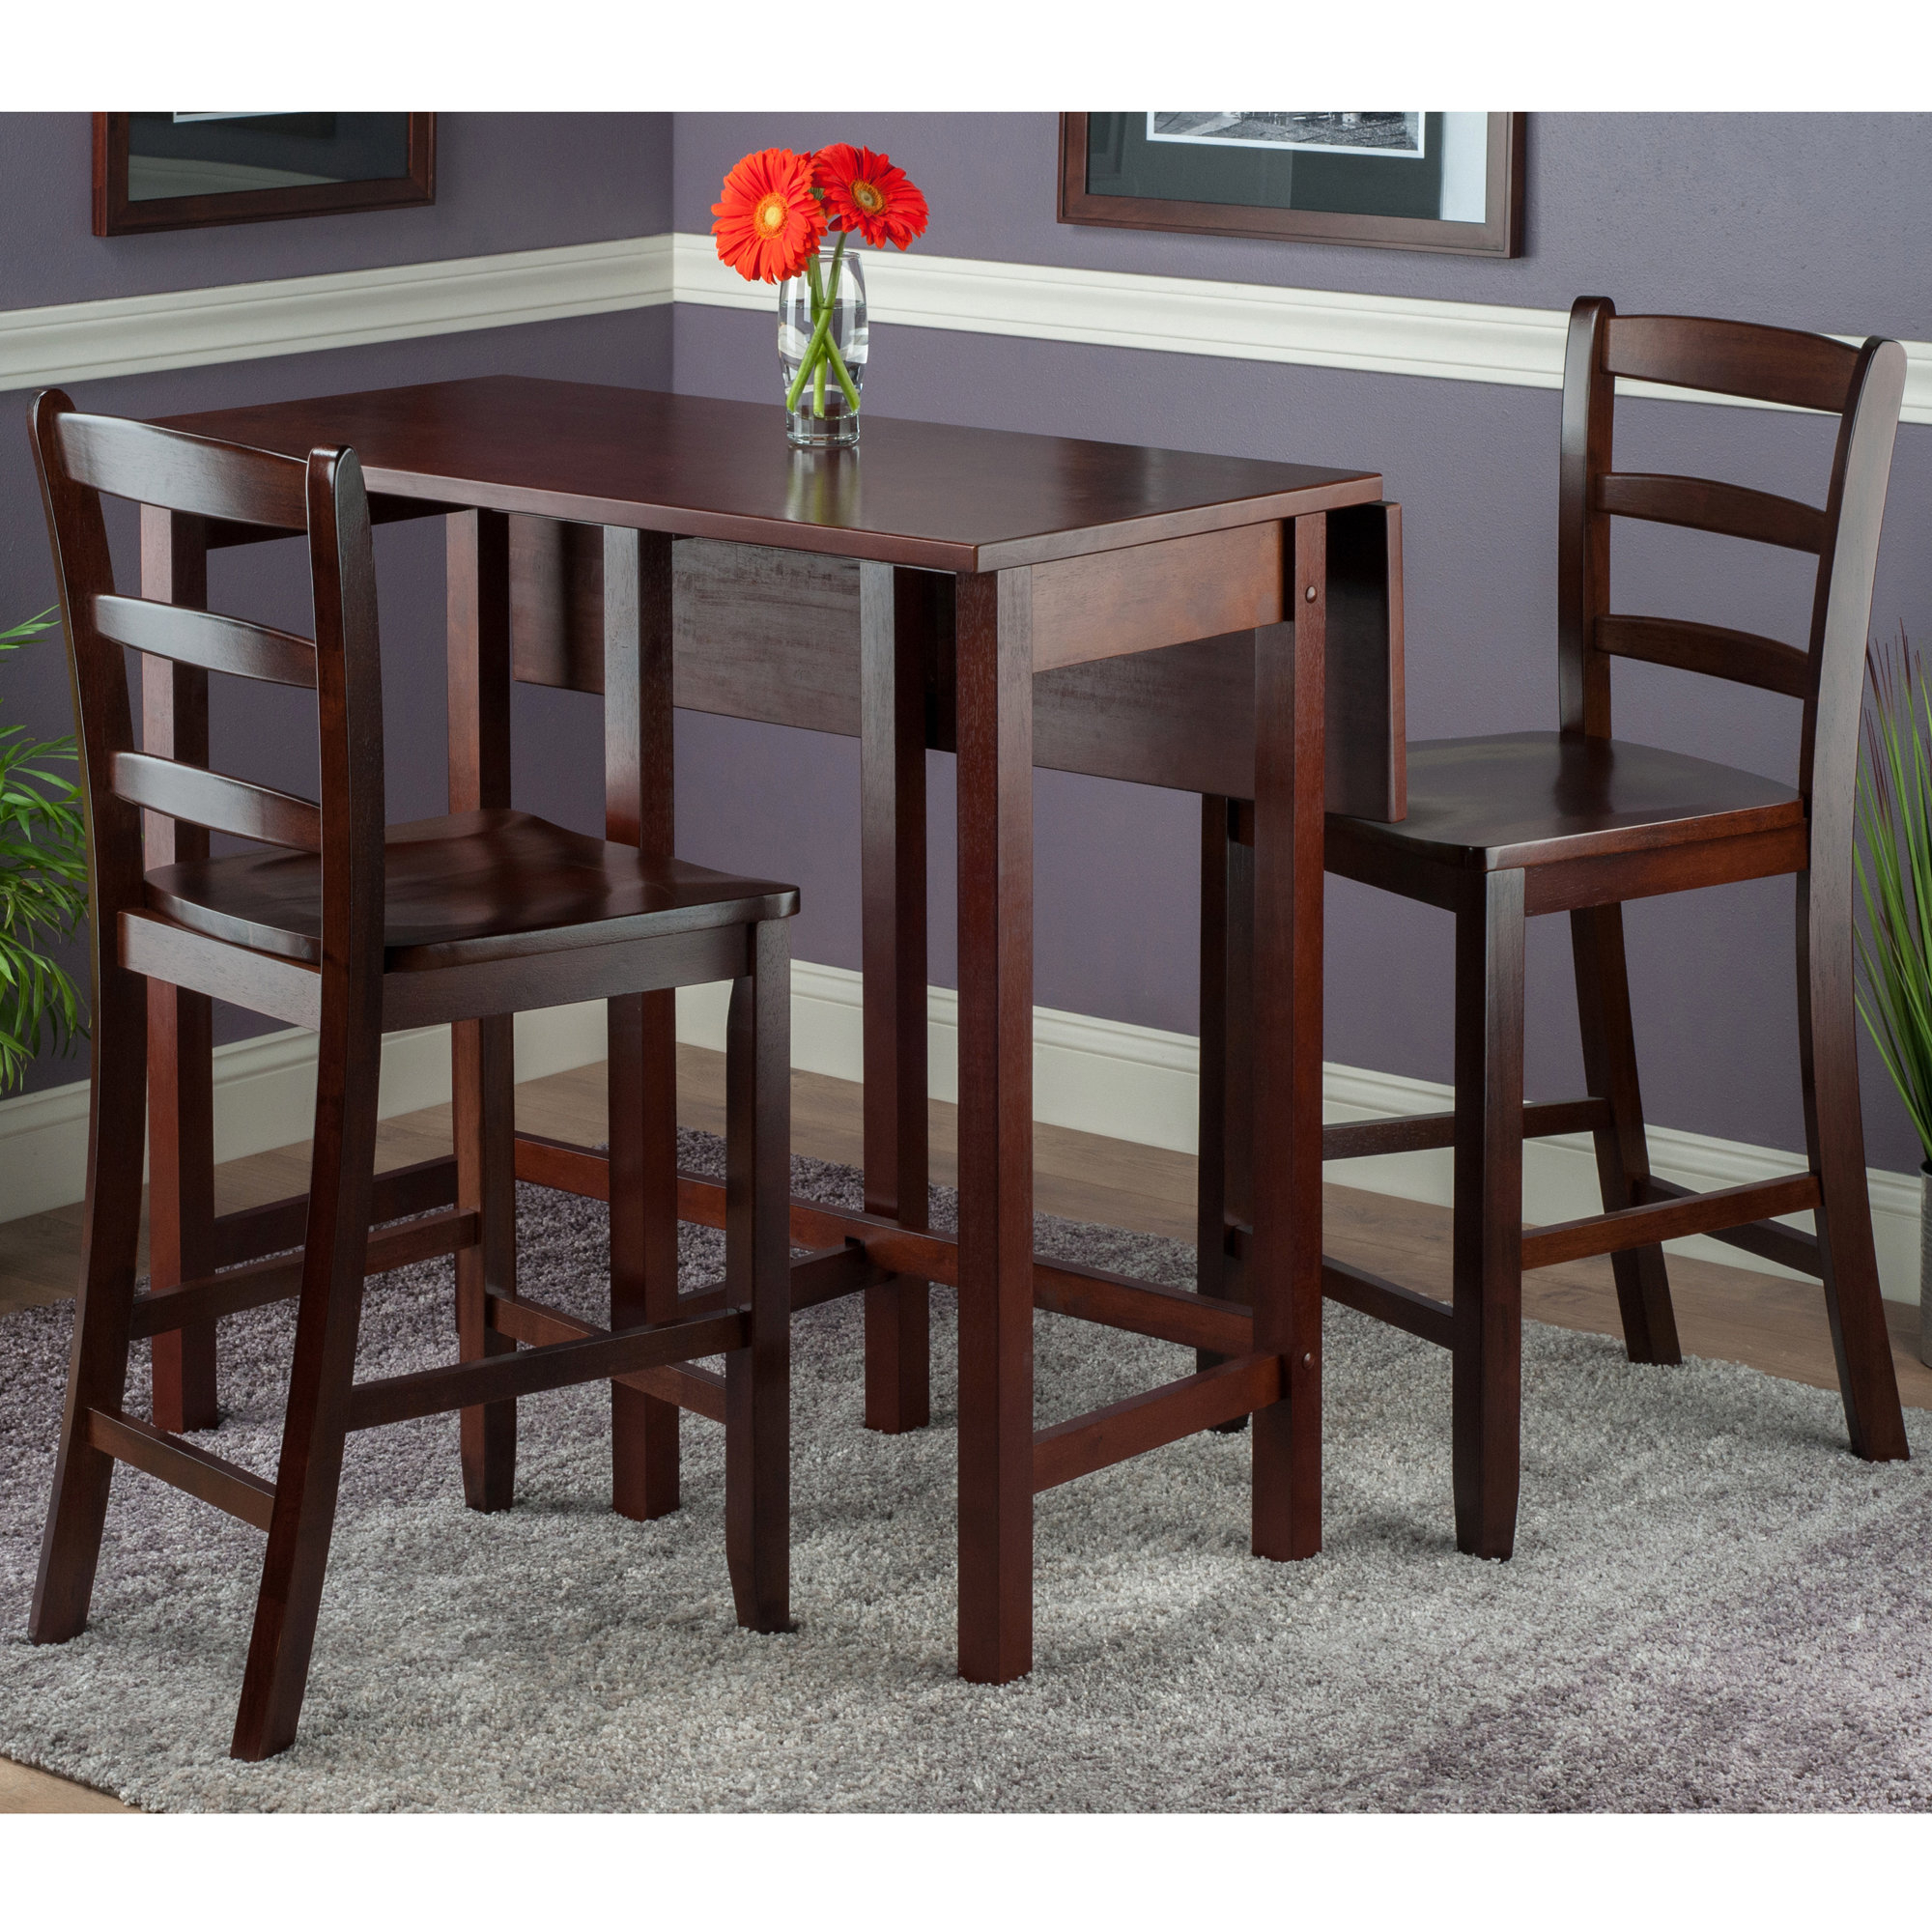 Crownover 3 Piece Bar Table Sets For Well Liked Red Barrel Studio Bettencourt 3 Piece Drop Leaf Dining Set & Reviews (View 7 of 25)